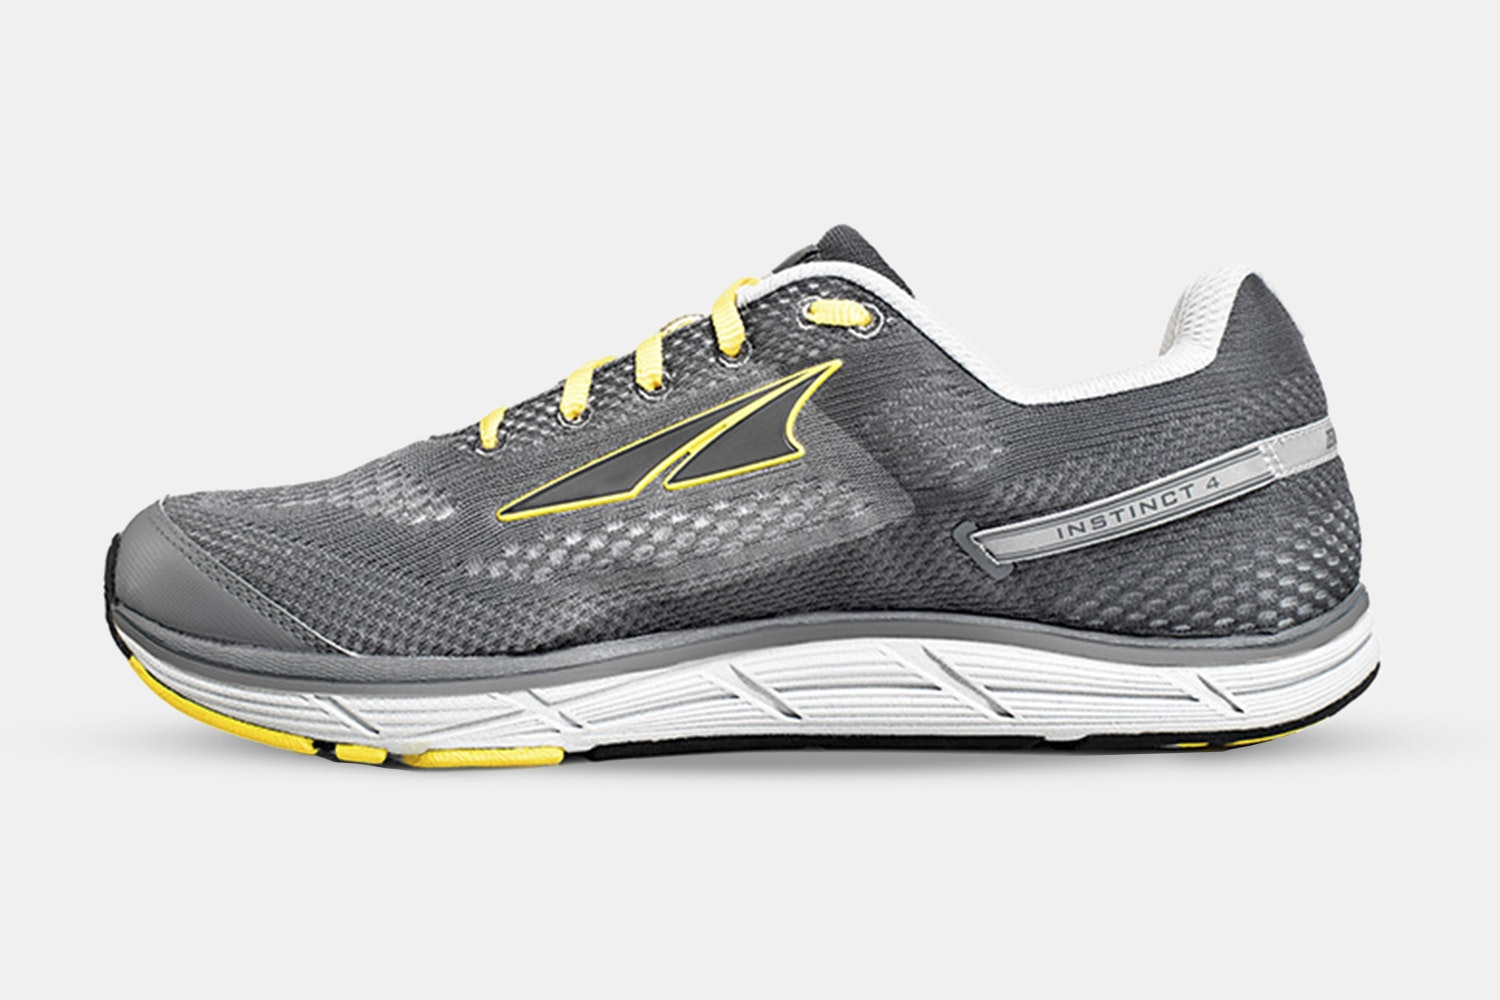 Instinct 4 – Men's – Grey / Yellow